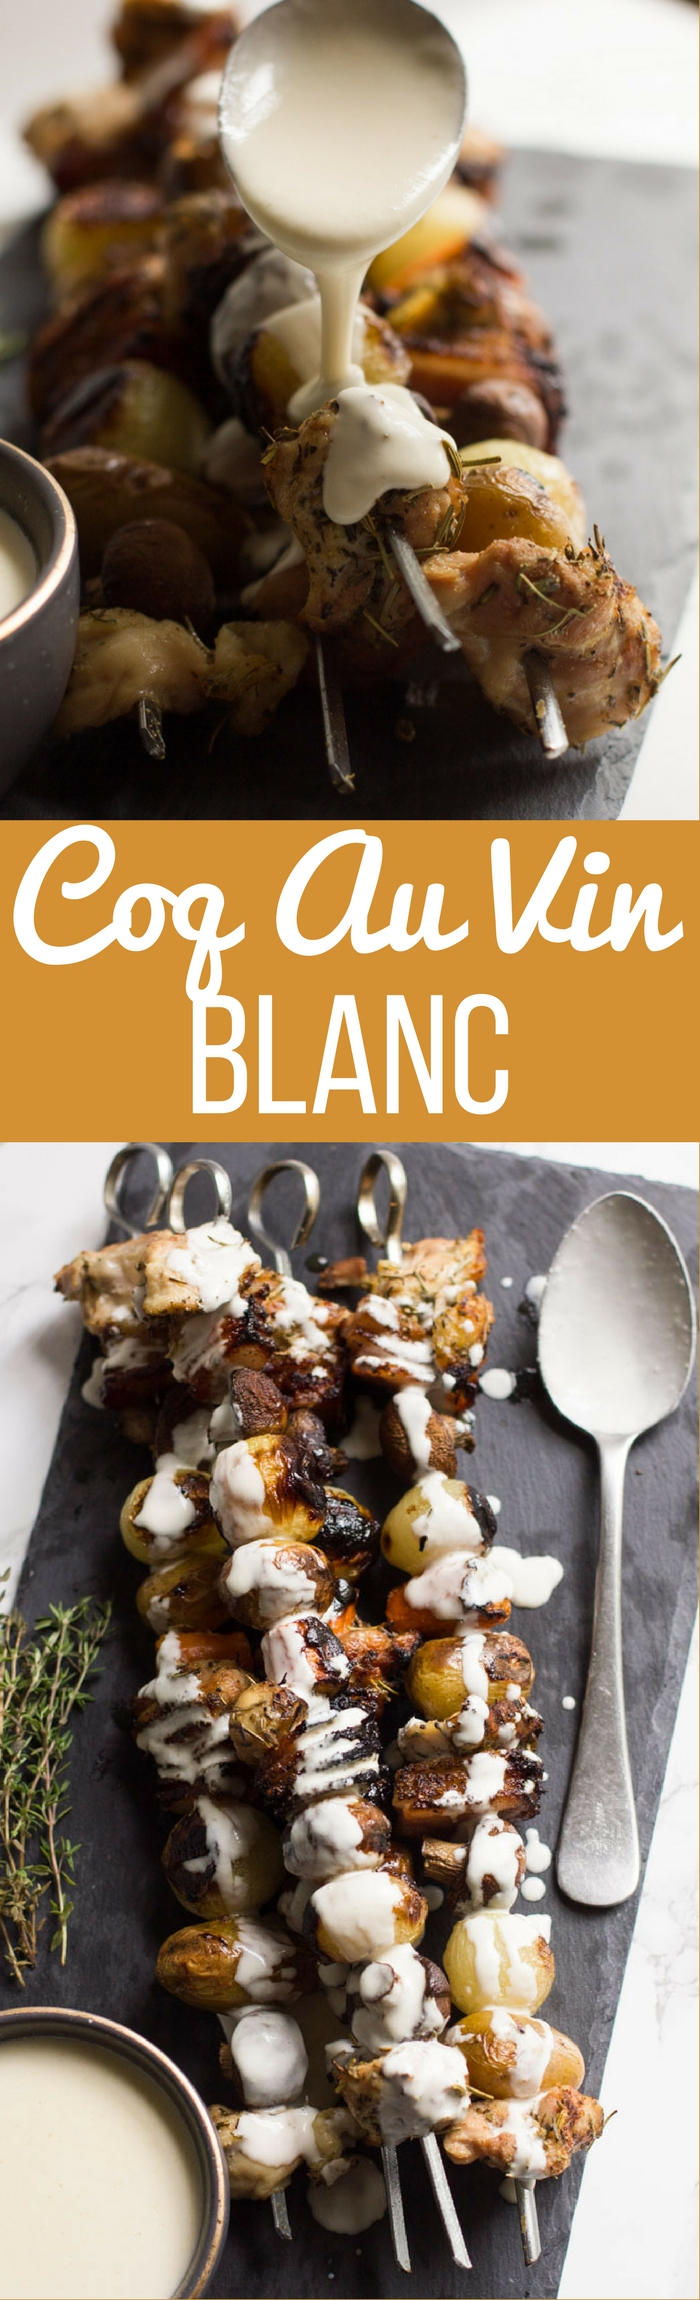 This version of Coq Au Vin Blanc is different - it's on a skewer! Grilled and smothered in a white wine sauce, it's perfect for your next barbecue.